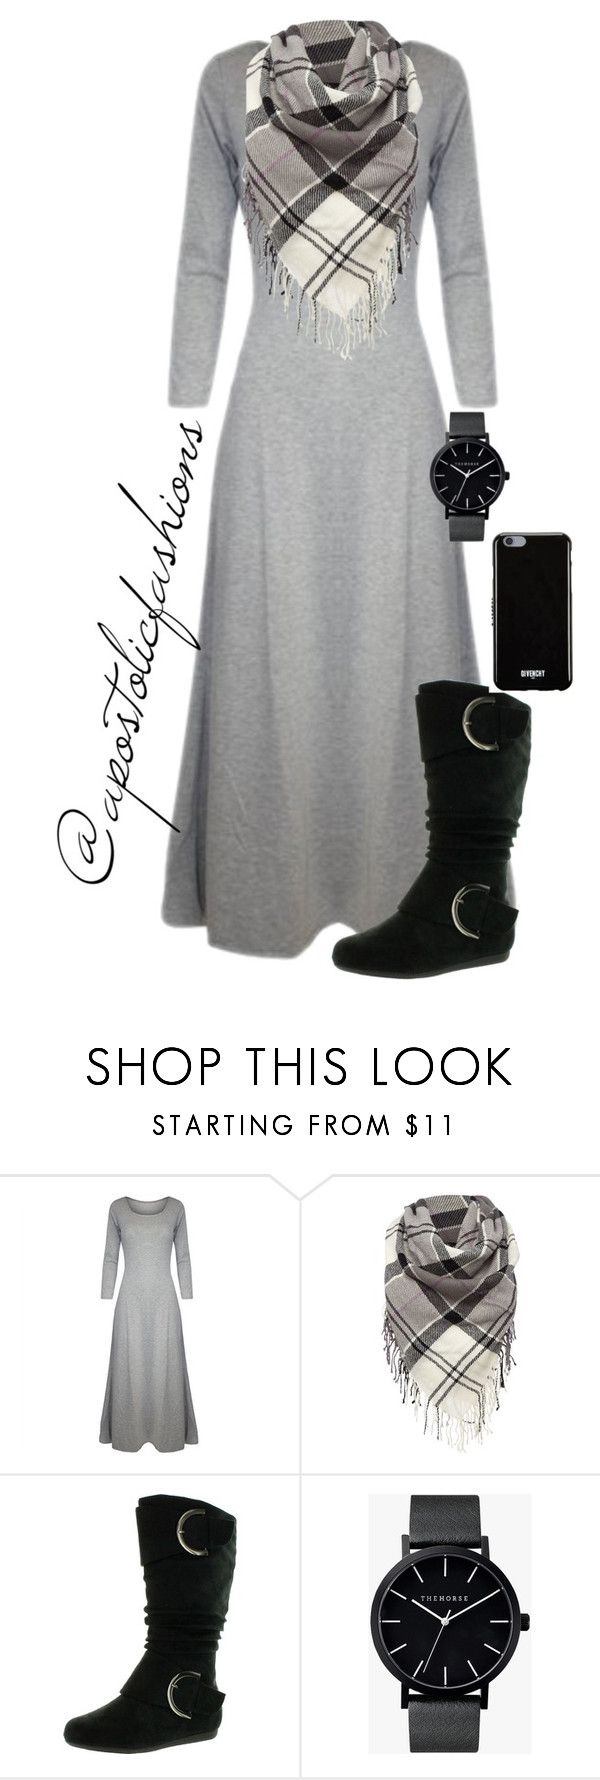 """""""Apostolic Fashions #1250"""" by apostolicfashions on Polyvore featuring Barbour, Top Moda, The Horse and Givenchy"""